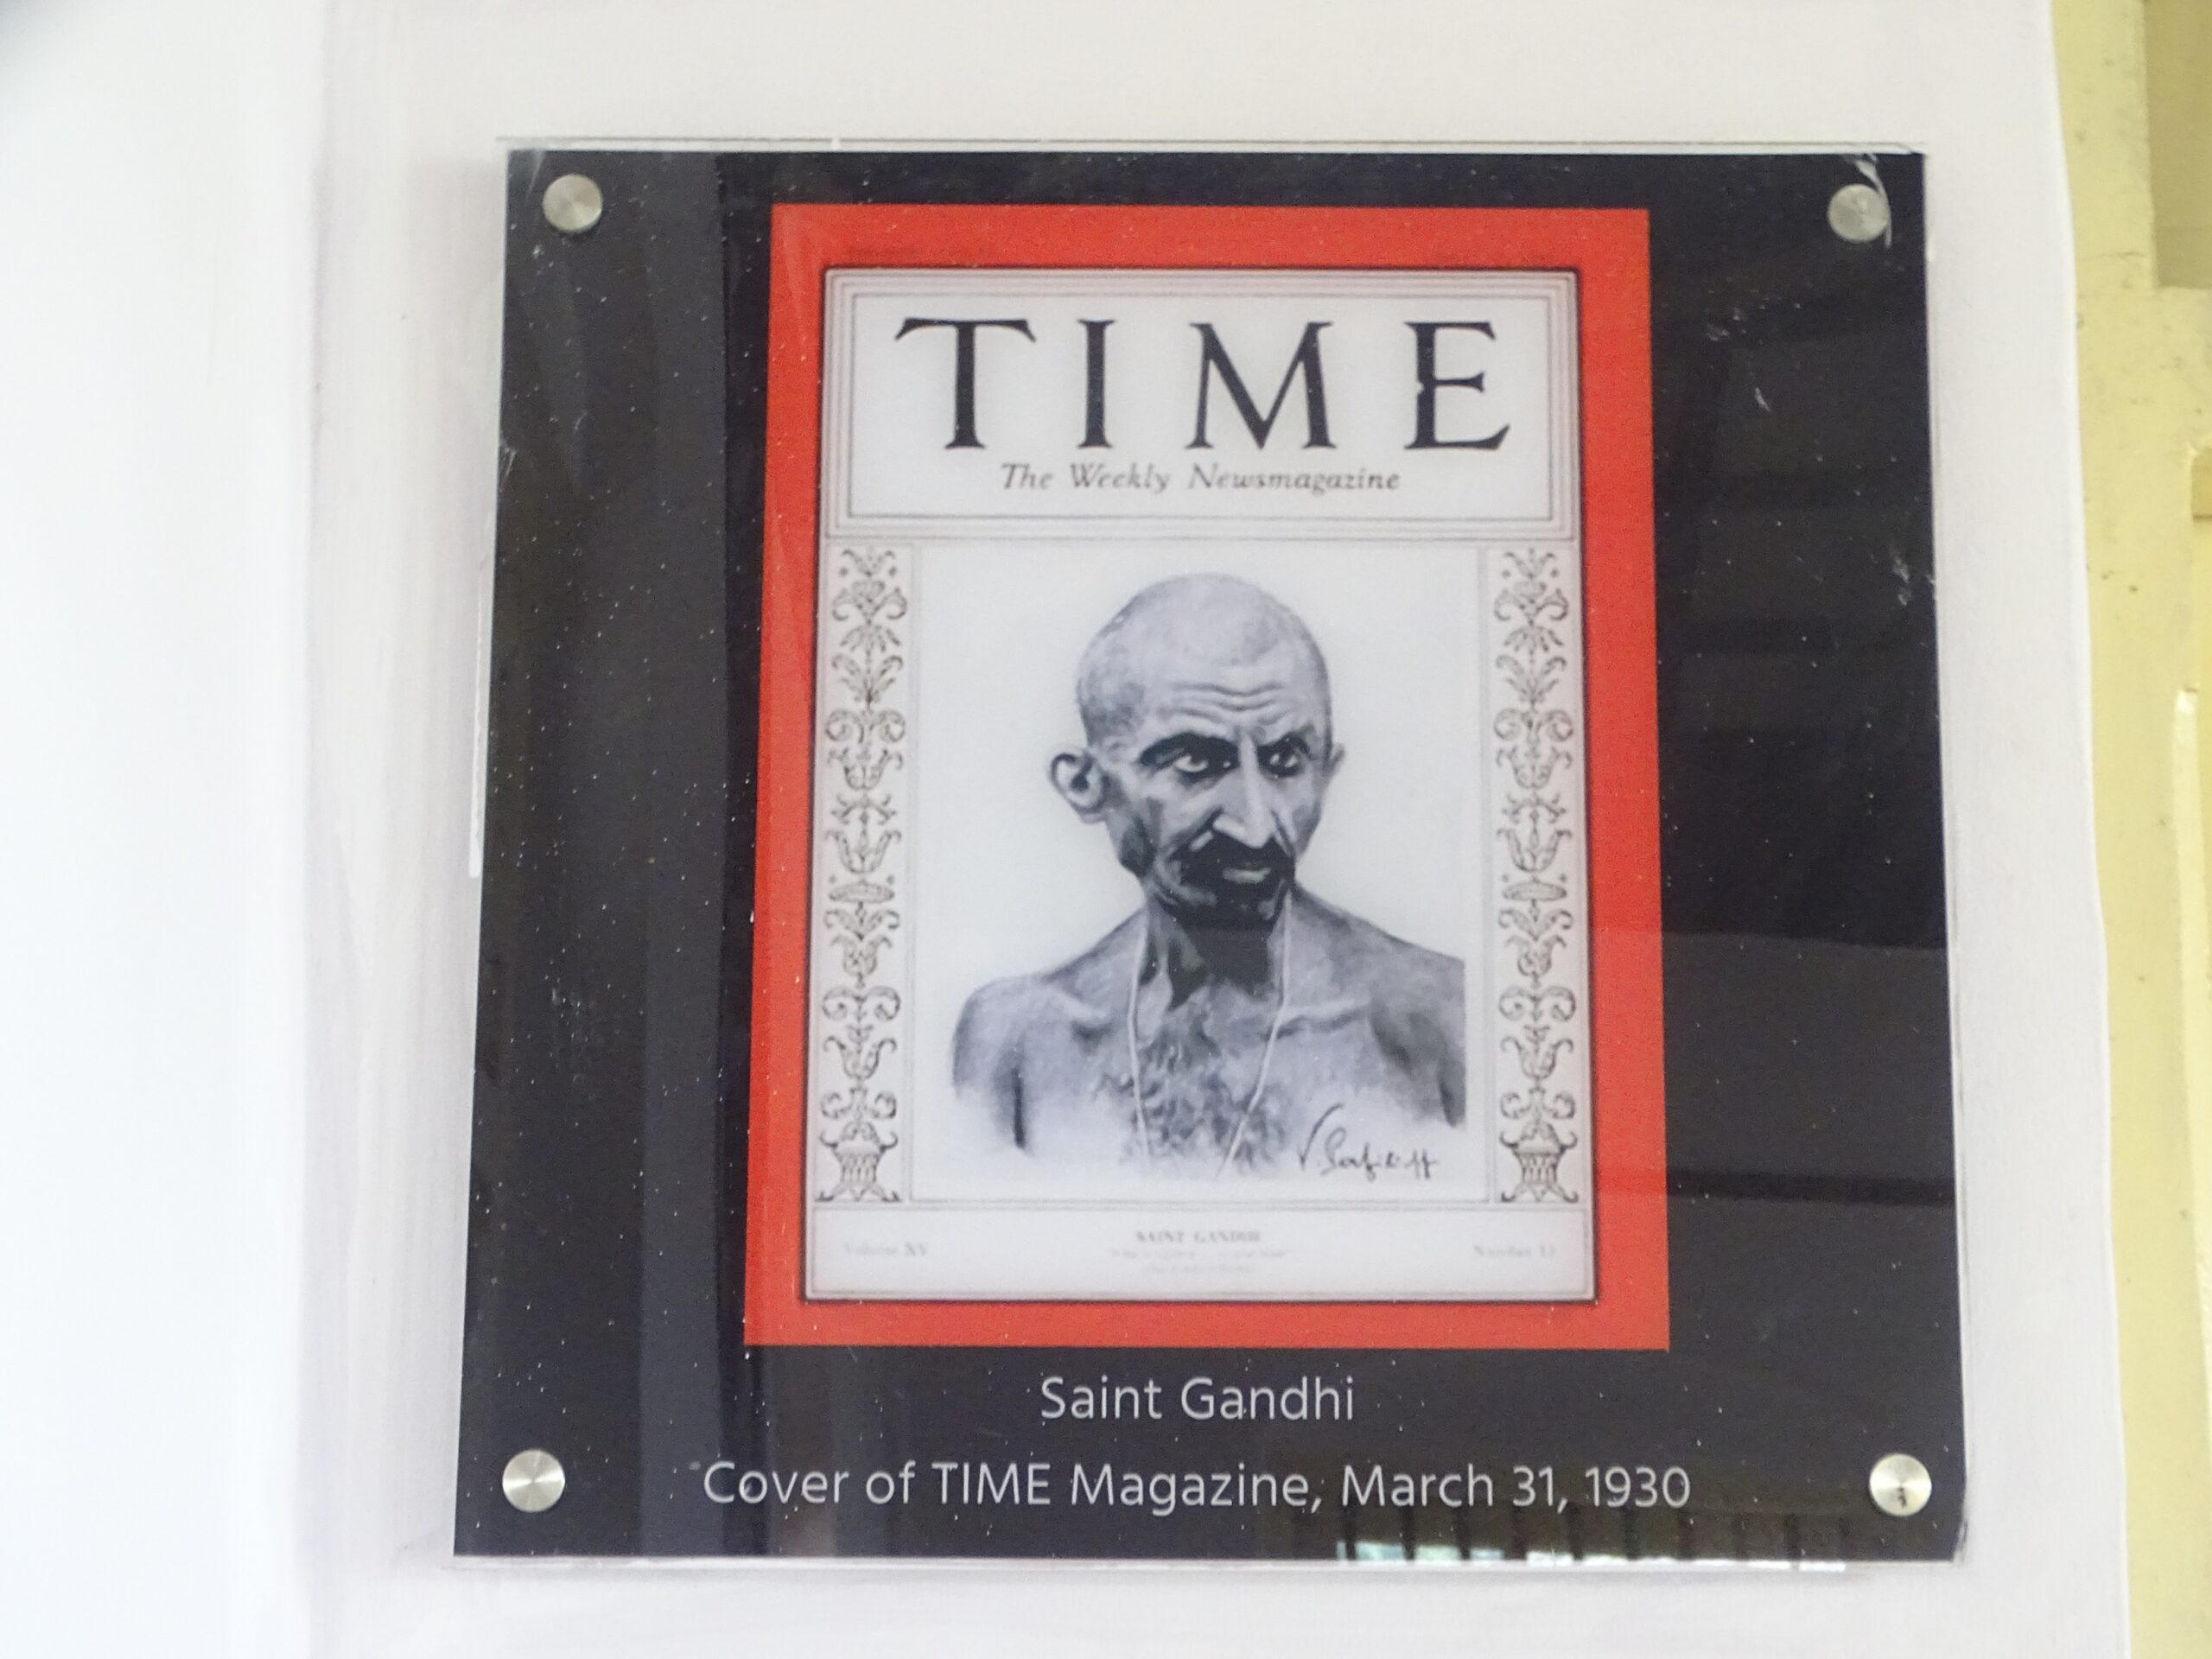 March 31, 1930 - Mahatma Gandhi on The Cover of TIME Magazine